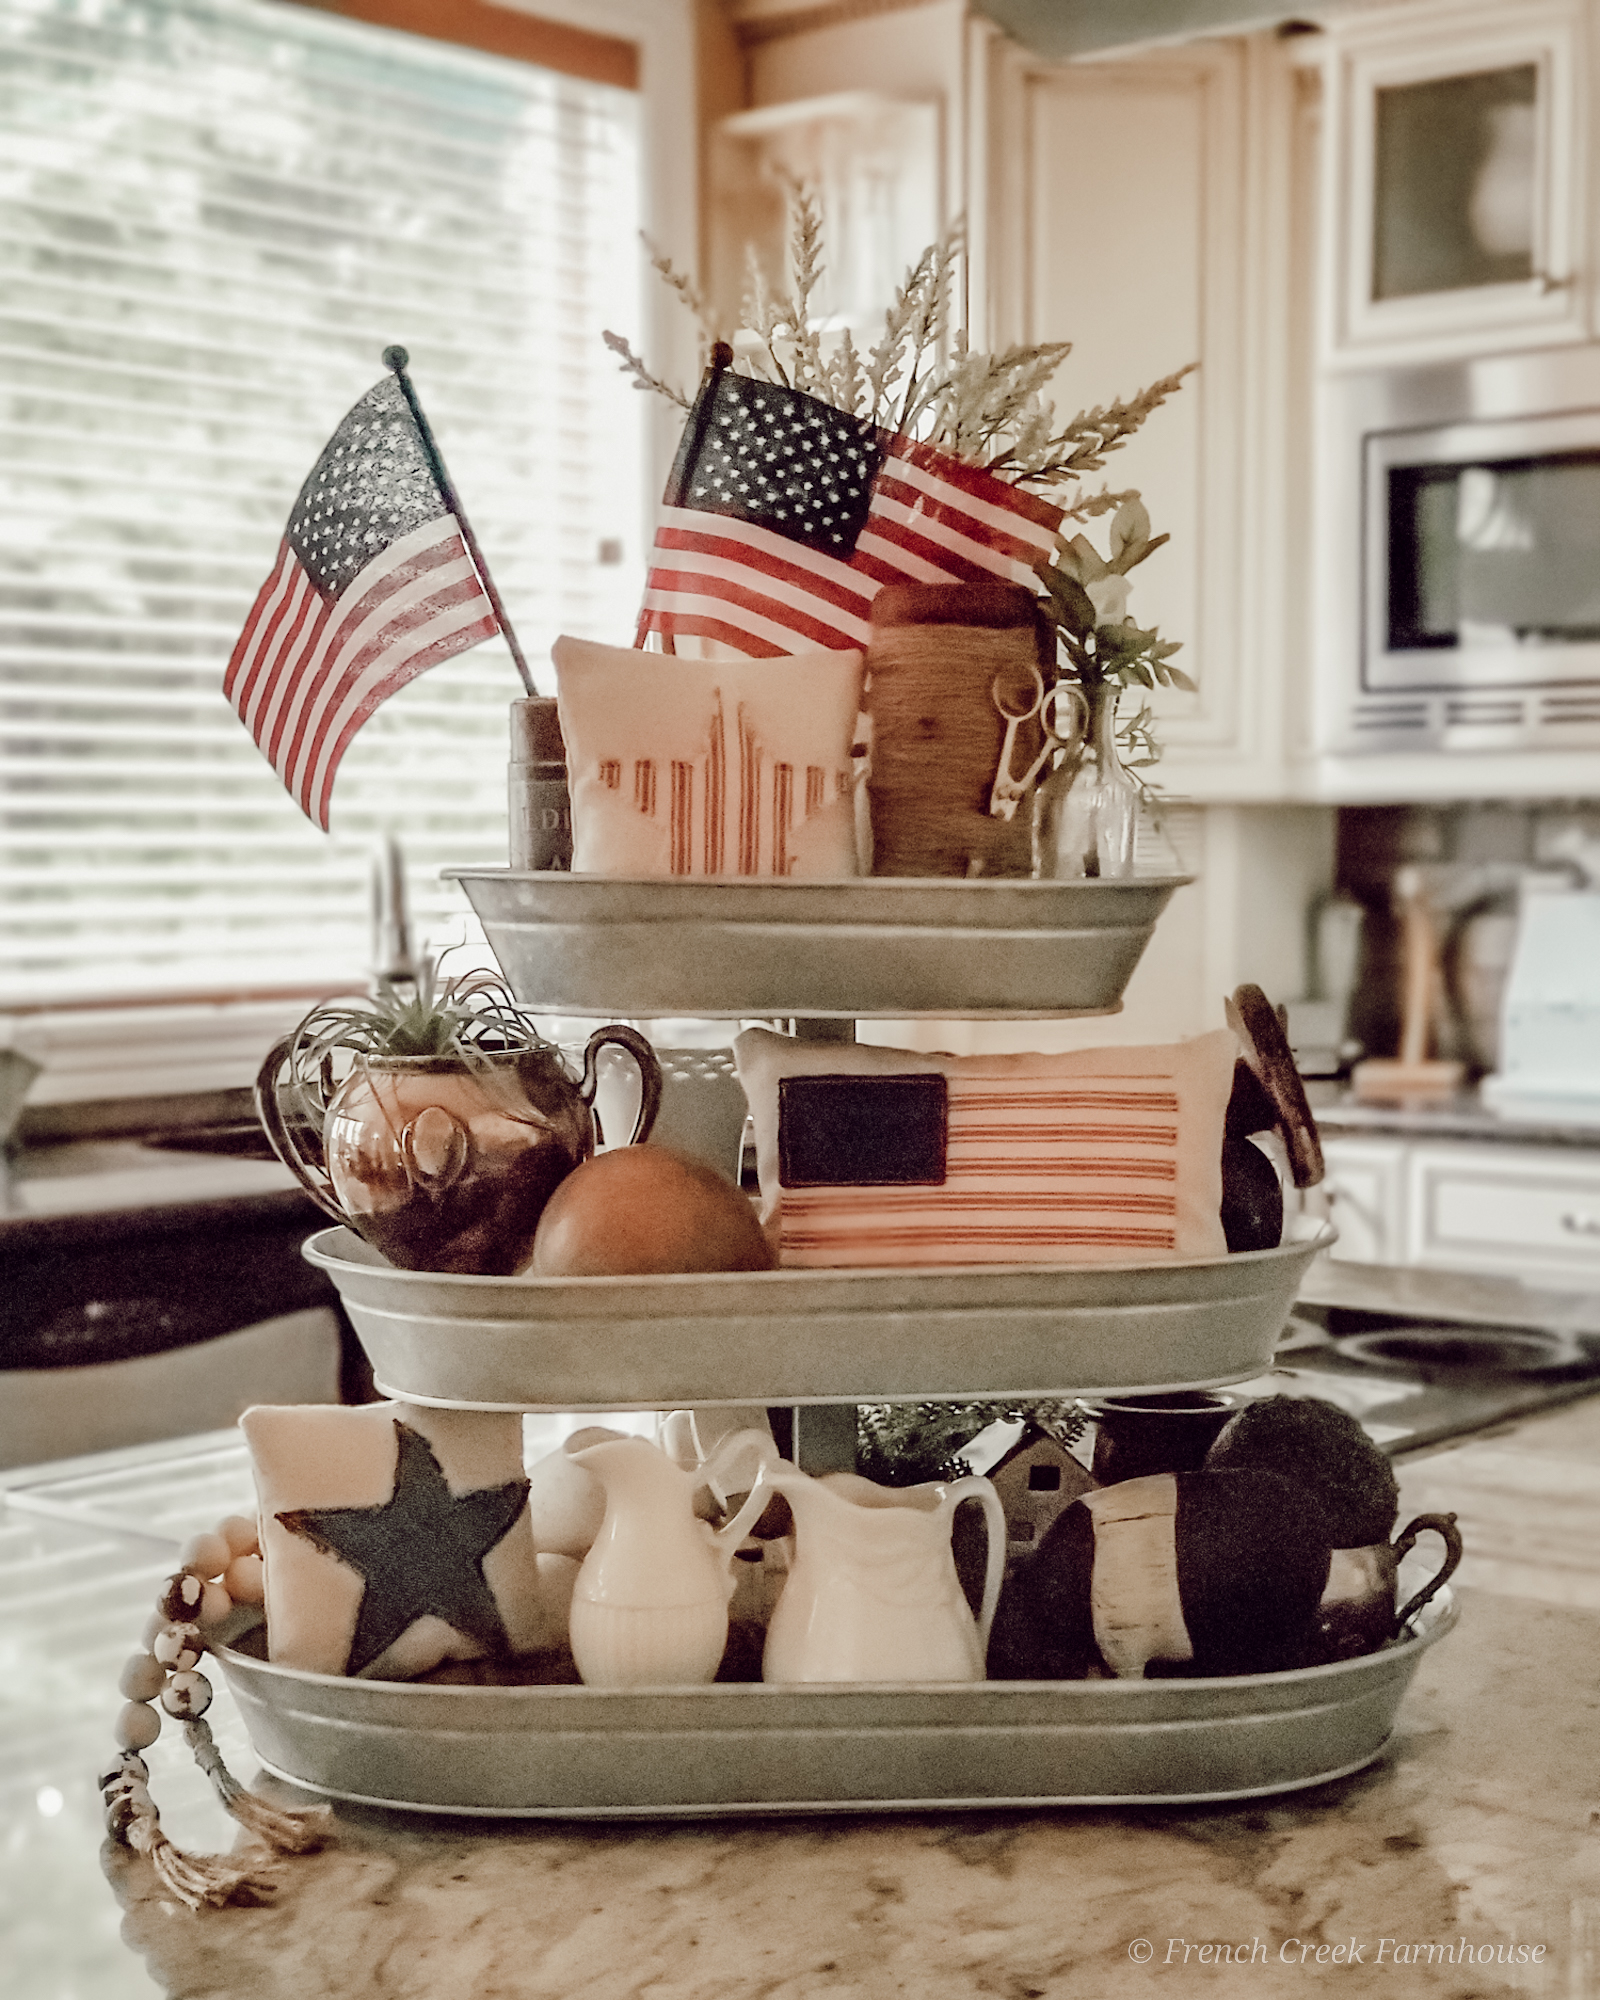 3-Tiered tray with patriotic decor on kitchen island